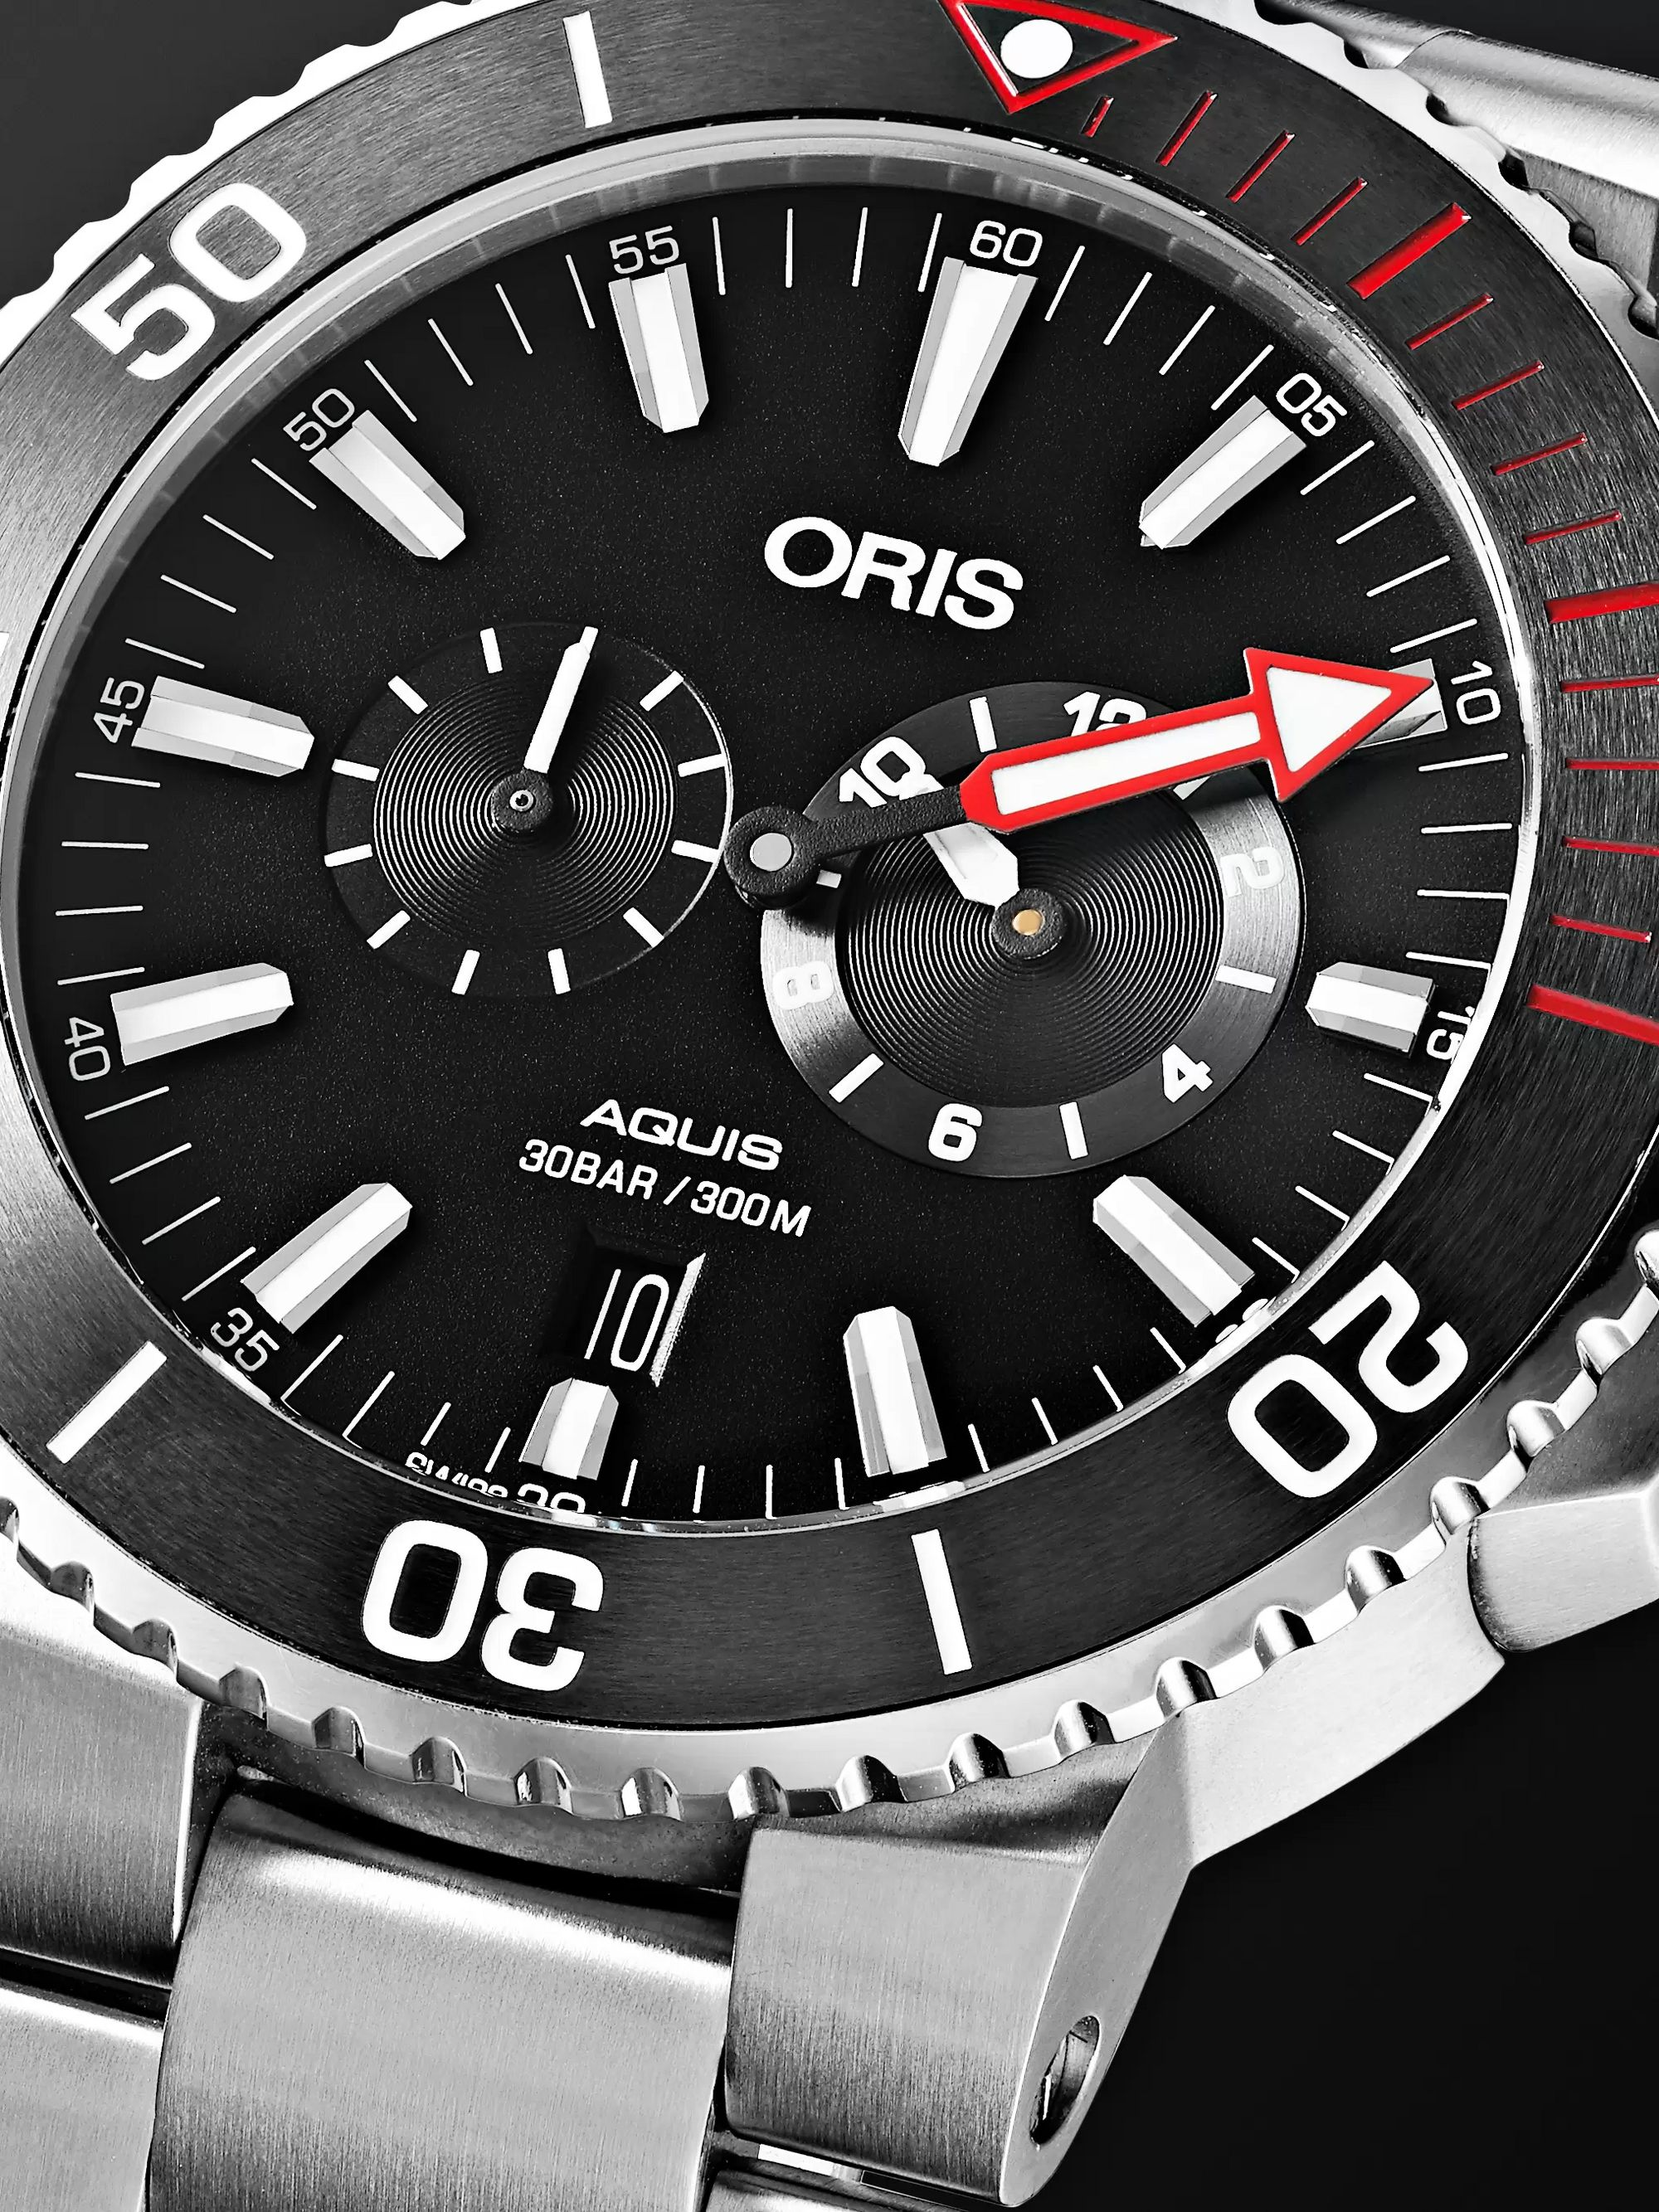 Oris Aquis Regulateur Der Meistertaucher Automatic 43.5mm Titanium Watch, Ref. No. 01 749 7734 7154-Set